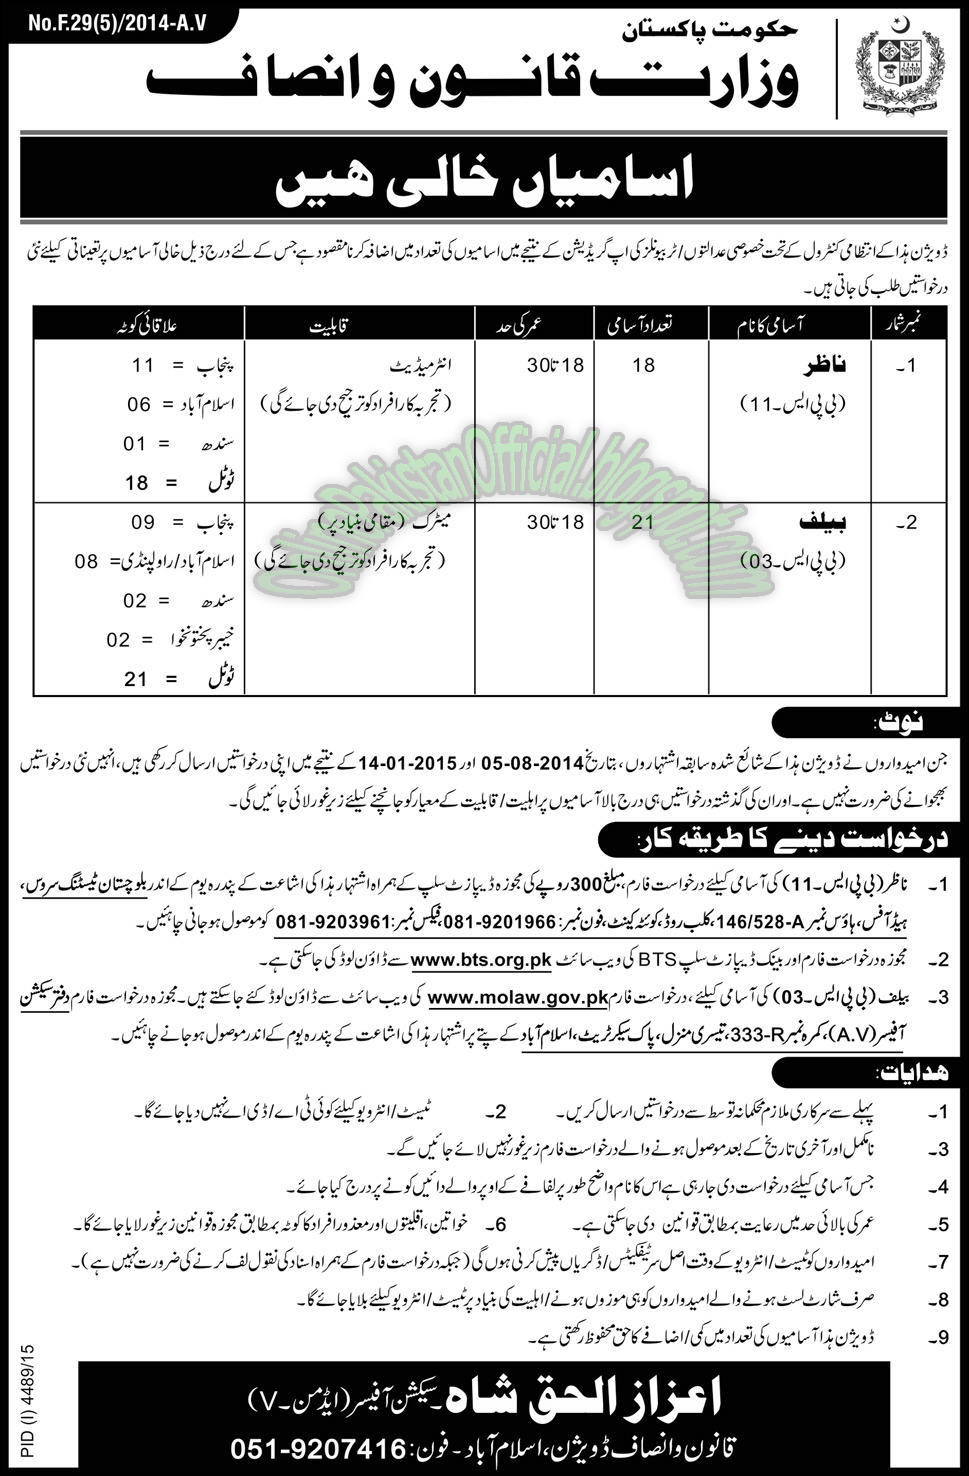 Ministry of Law & Justice jobs in islamabad